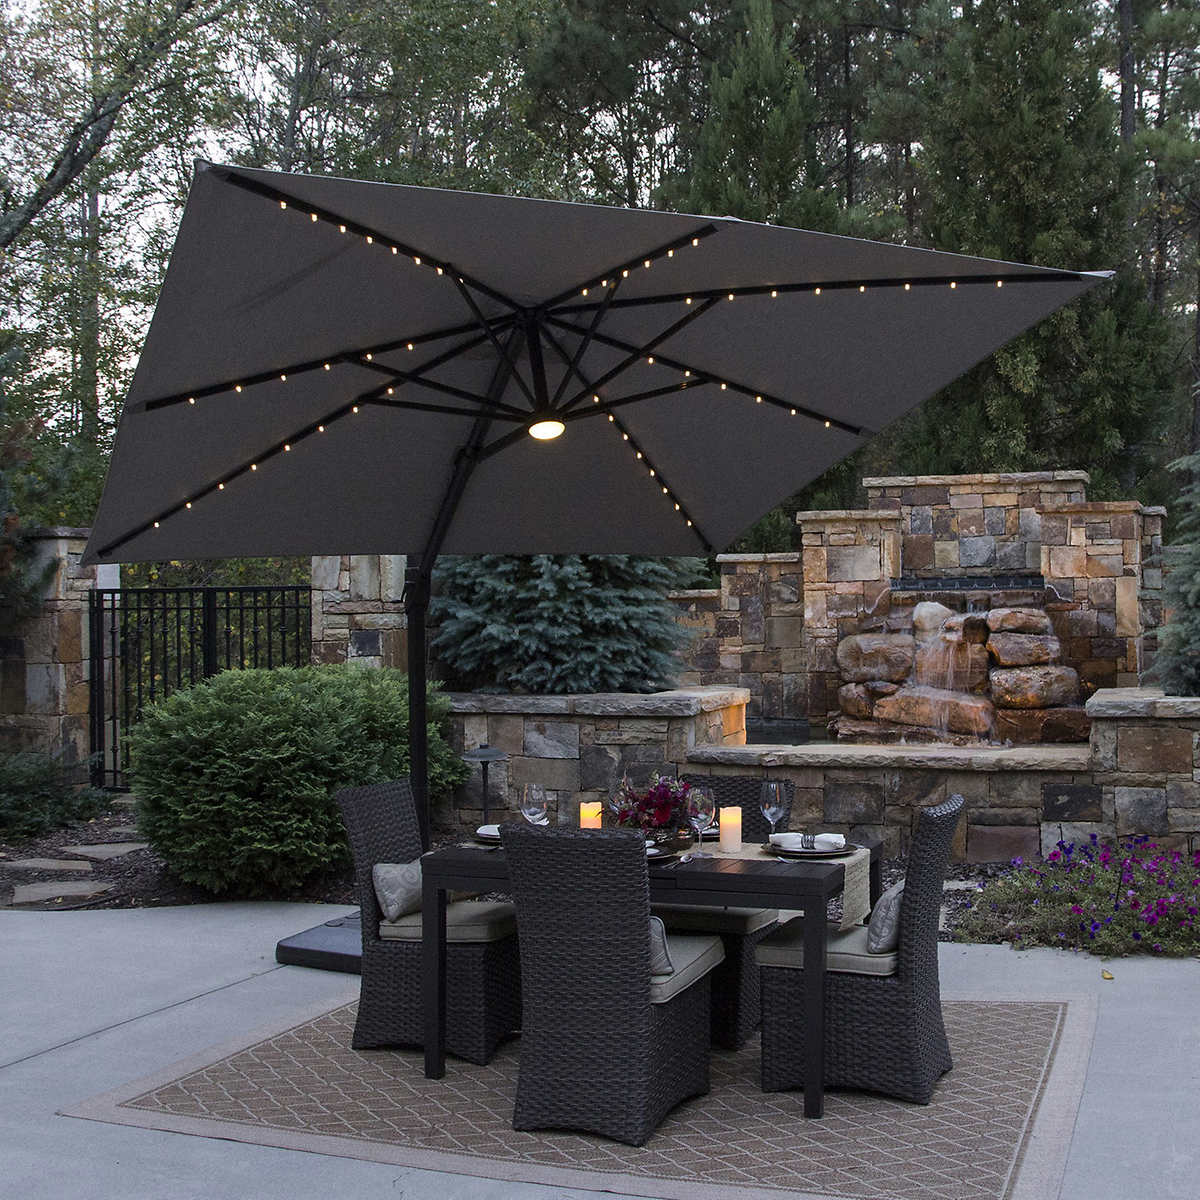 hanging free sun costway product solar market patio shipping overstock beige shade base umbrella led garden home w offset today